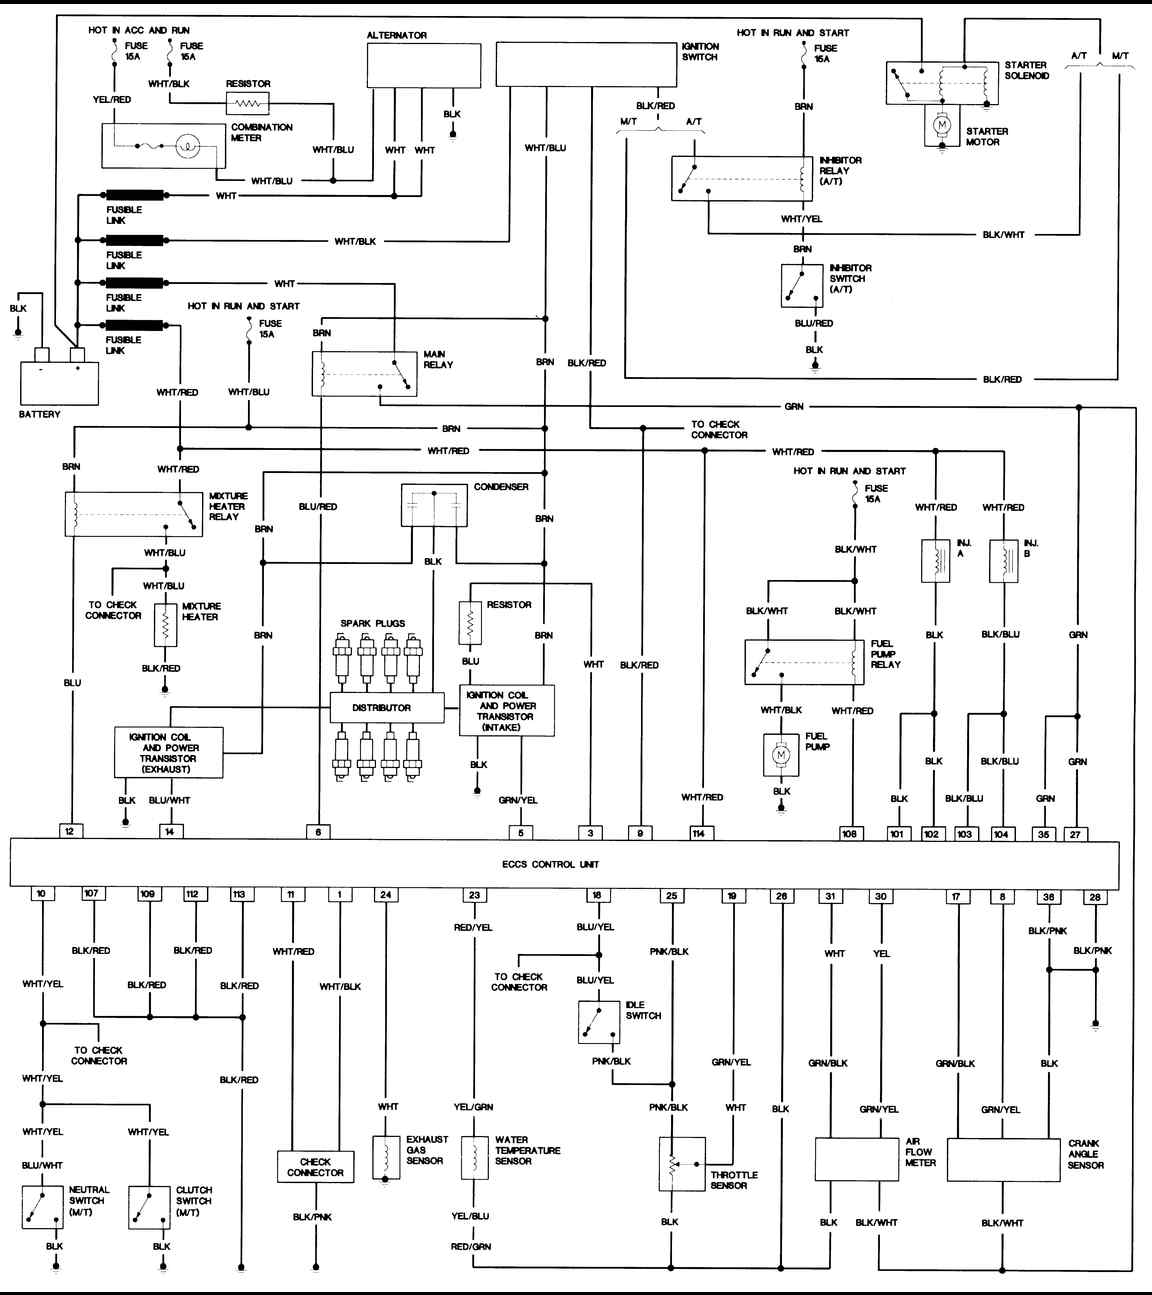 [TVPR_3874]  96 Nissan Distributor Wiring Diagram Diagram Base Website Wiring Diagram -  VENNDIAGRAMMAKER.AISC-NET.IT | 96 Nissan Distributor Wiring Diagram |  | Diagram Base Website Full Edition - aisc